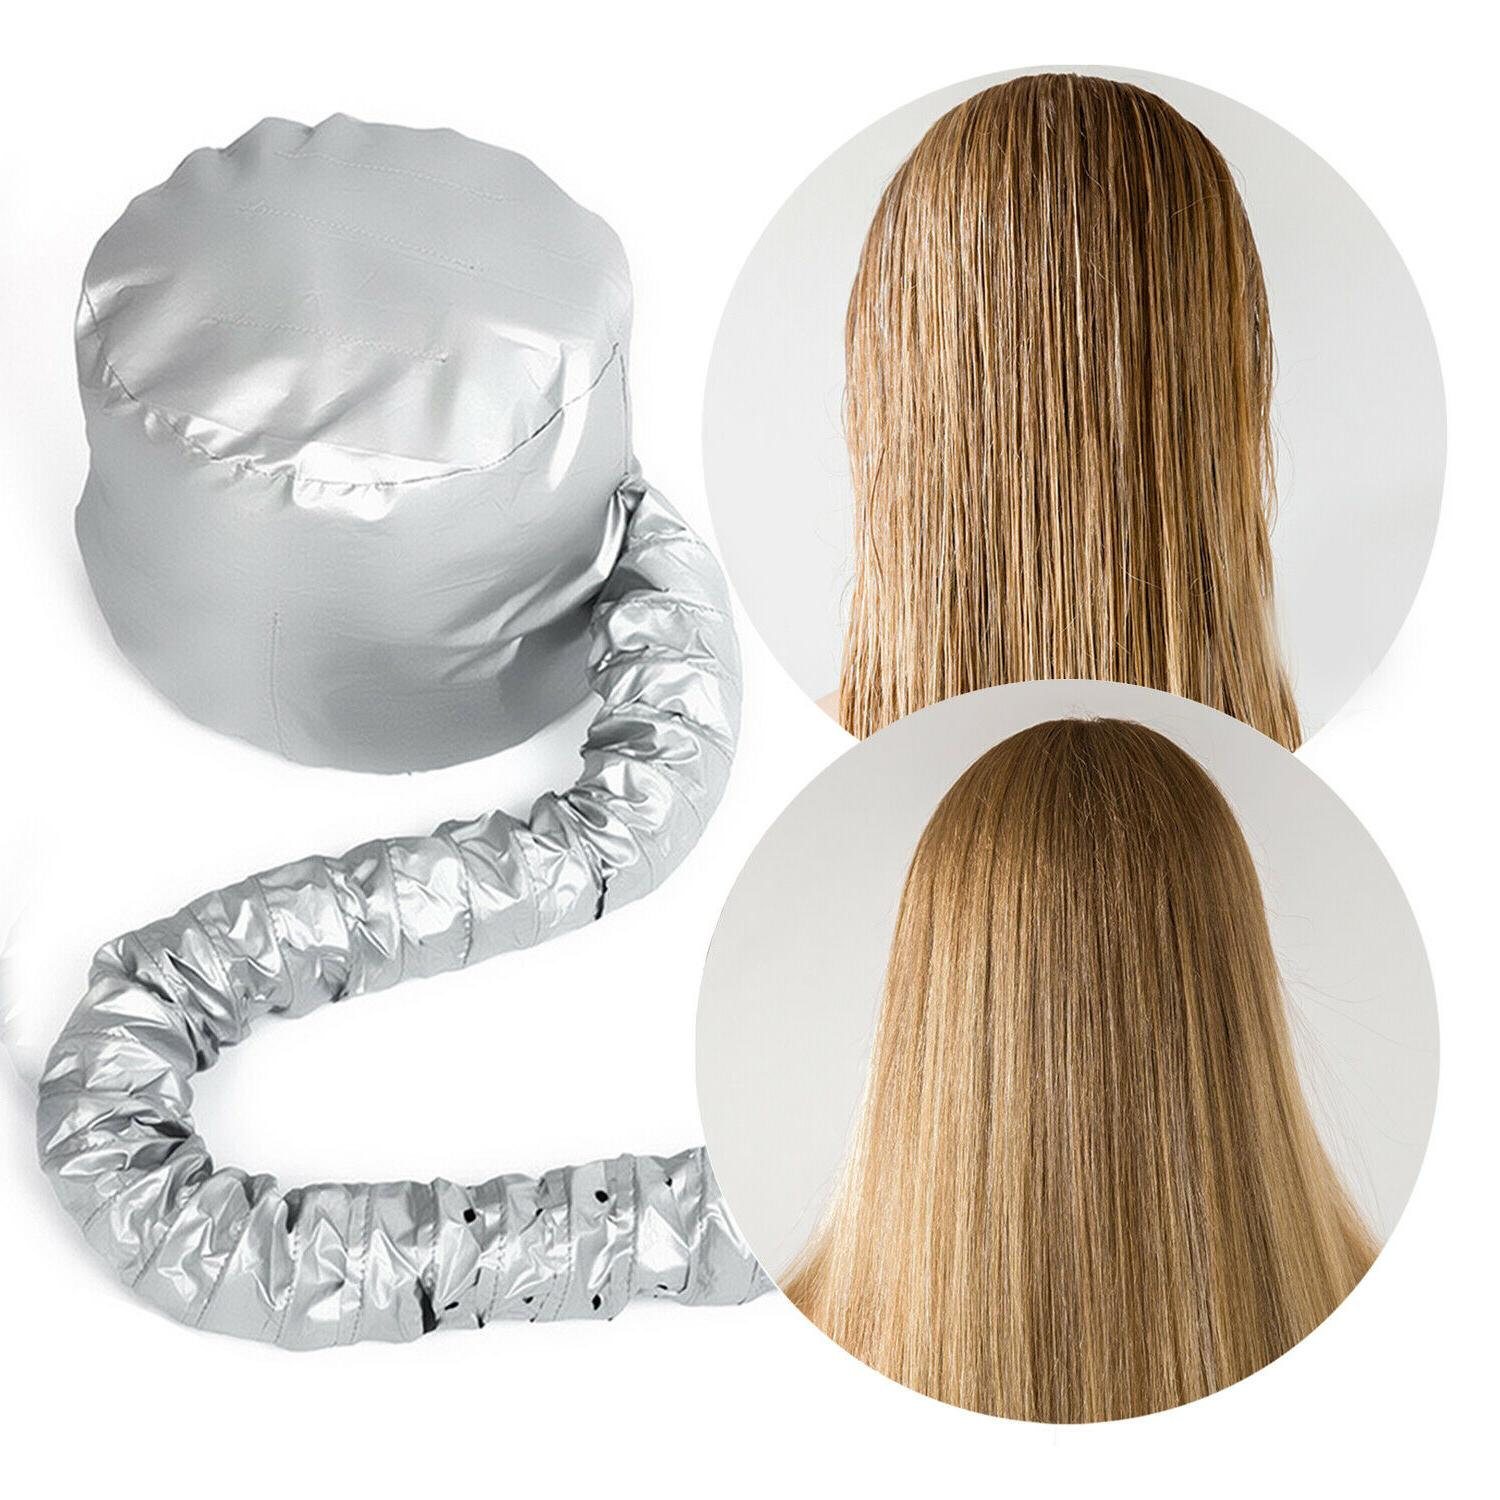 Professional Bonnet Hair Blow Dryer Drying Cap Hat for Home or